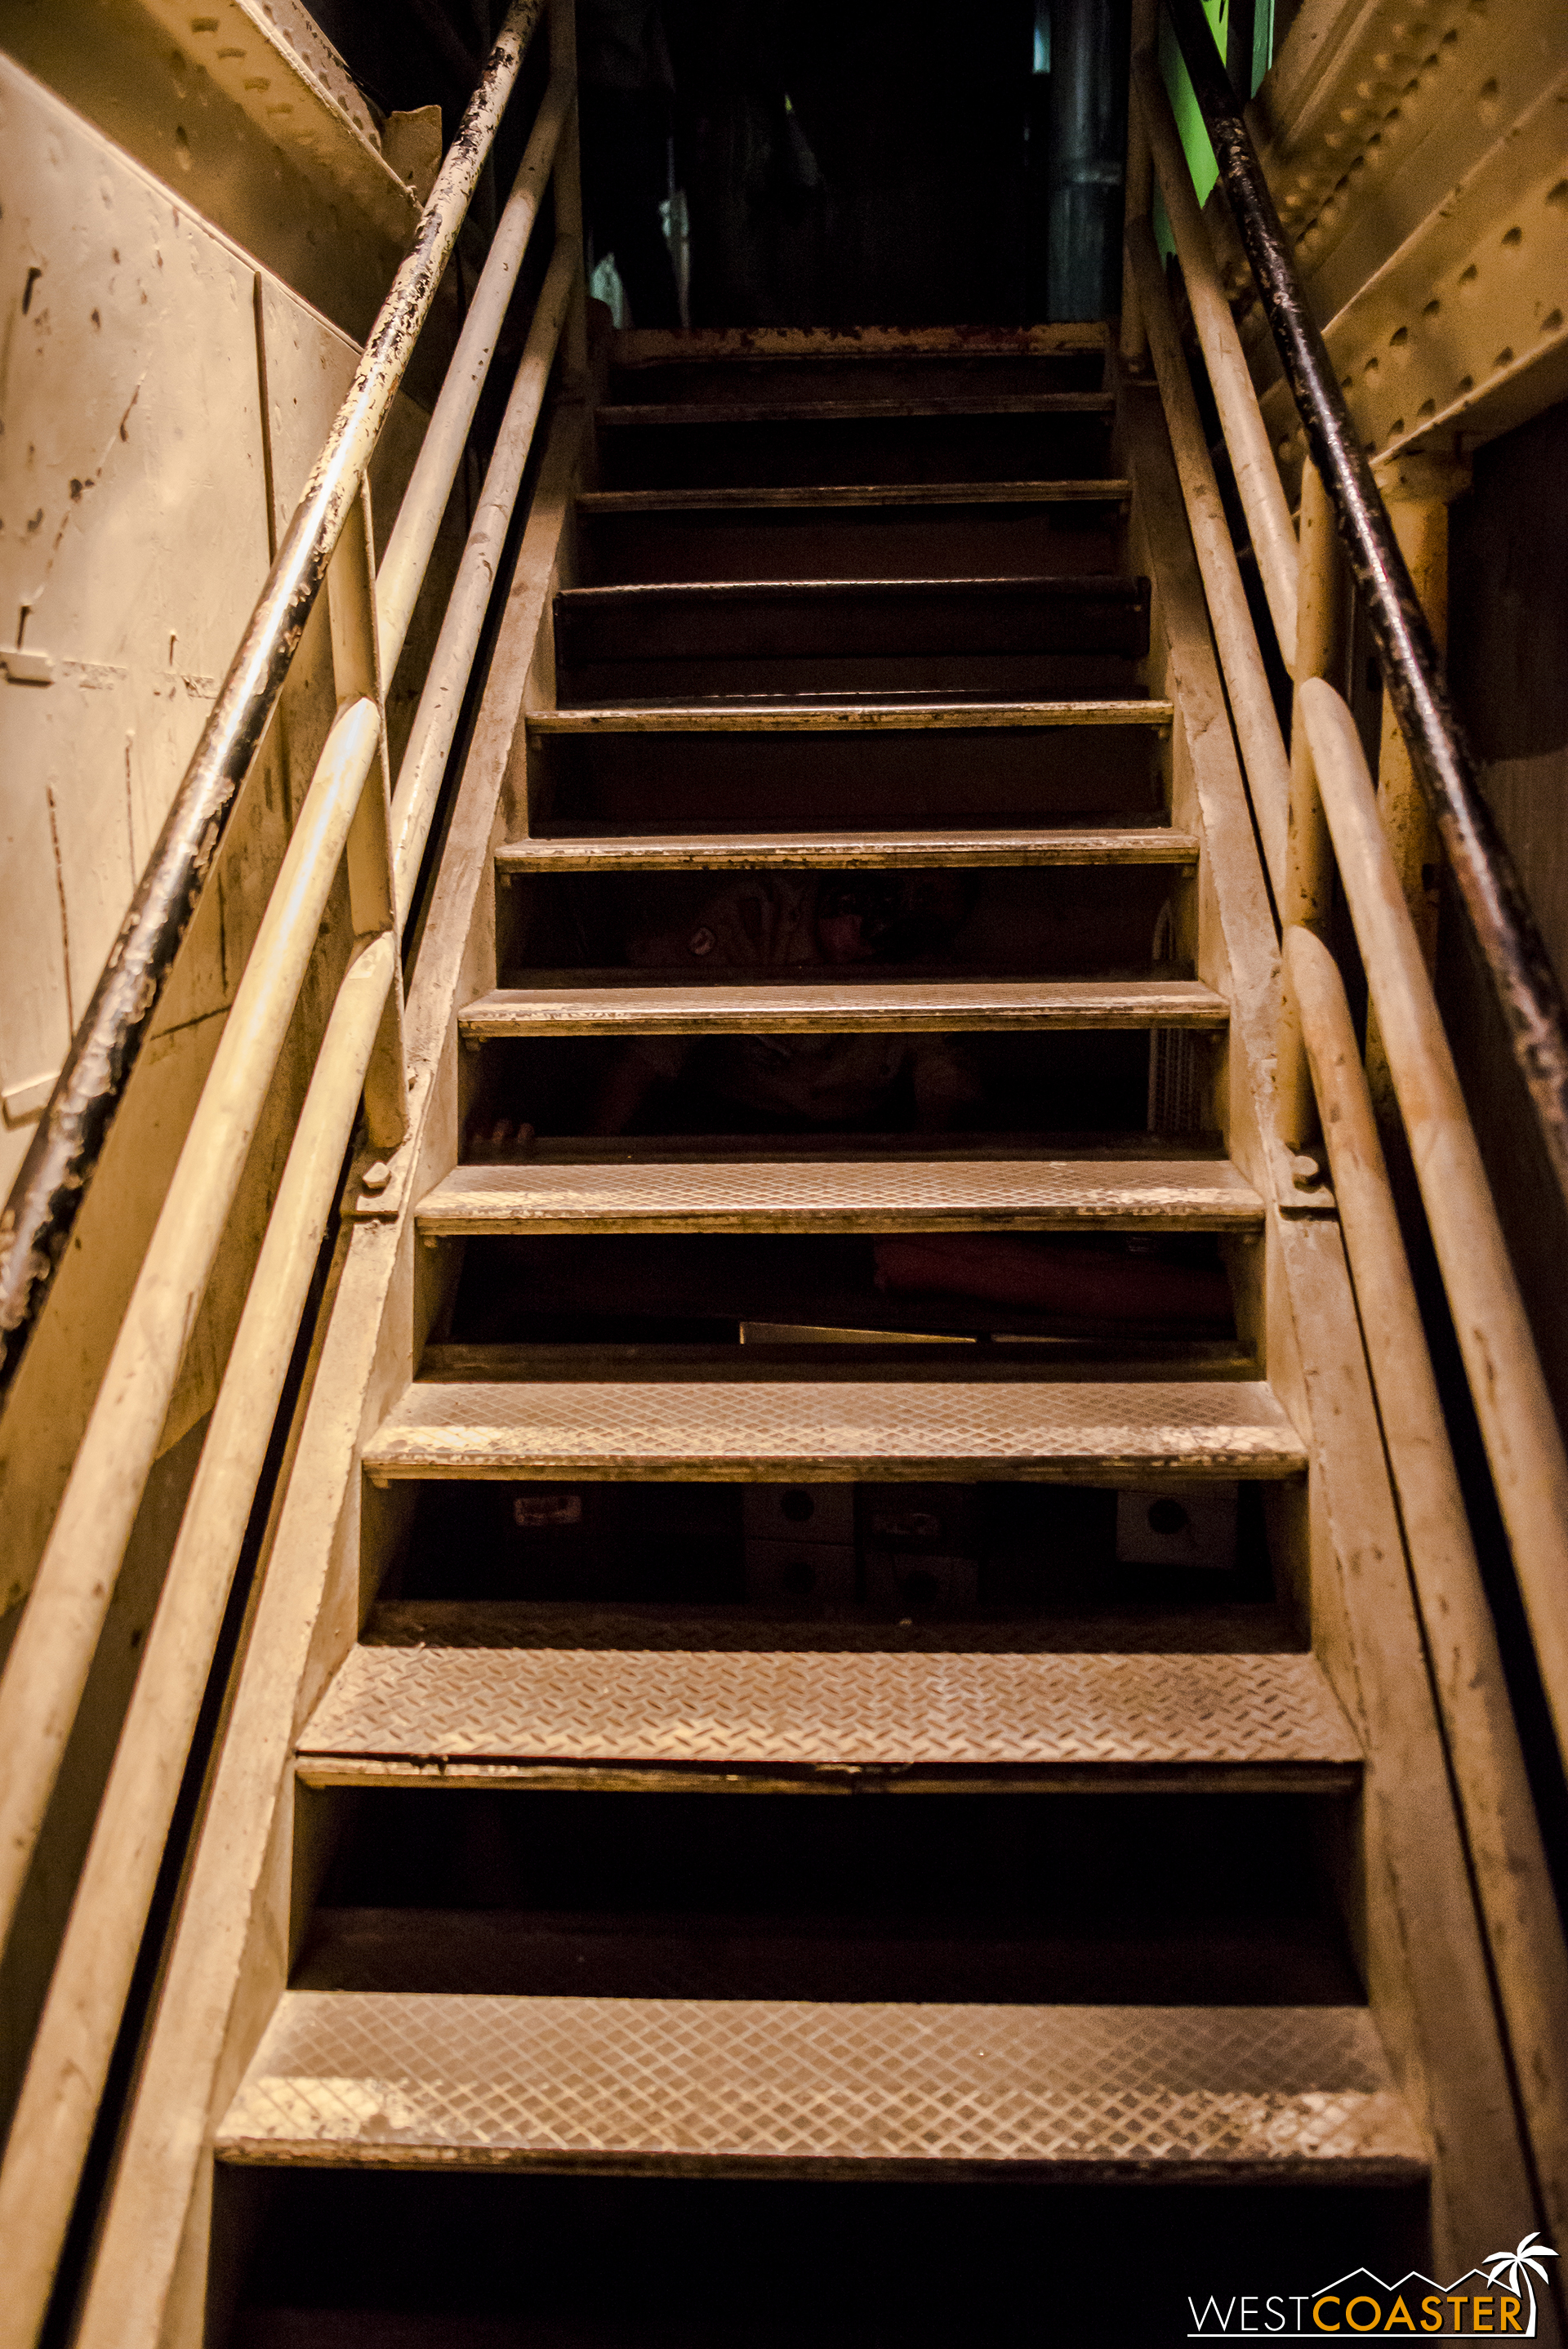 Up the spooky stairs, one of many in the ship mazes, which are not ADA friendly.